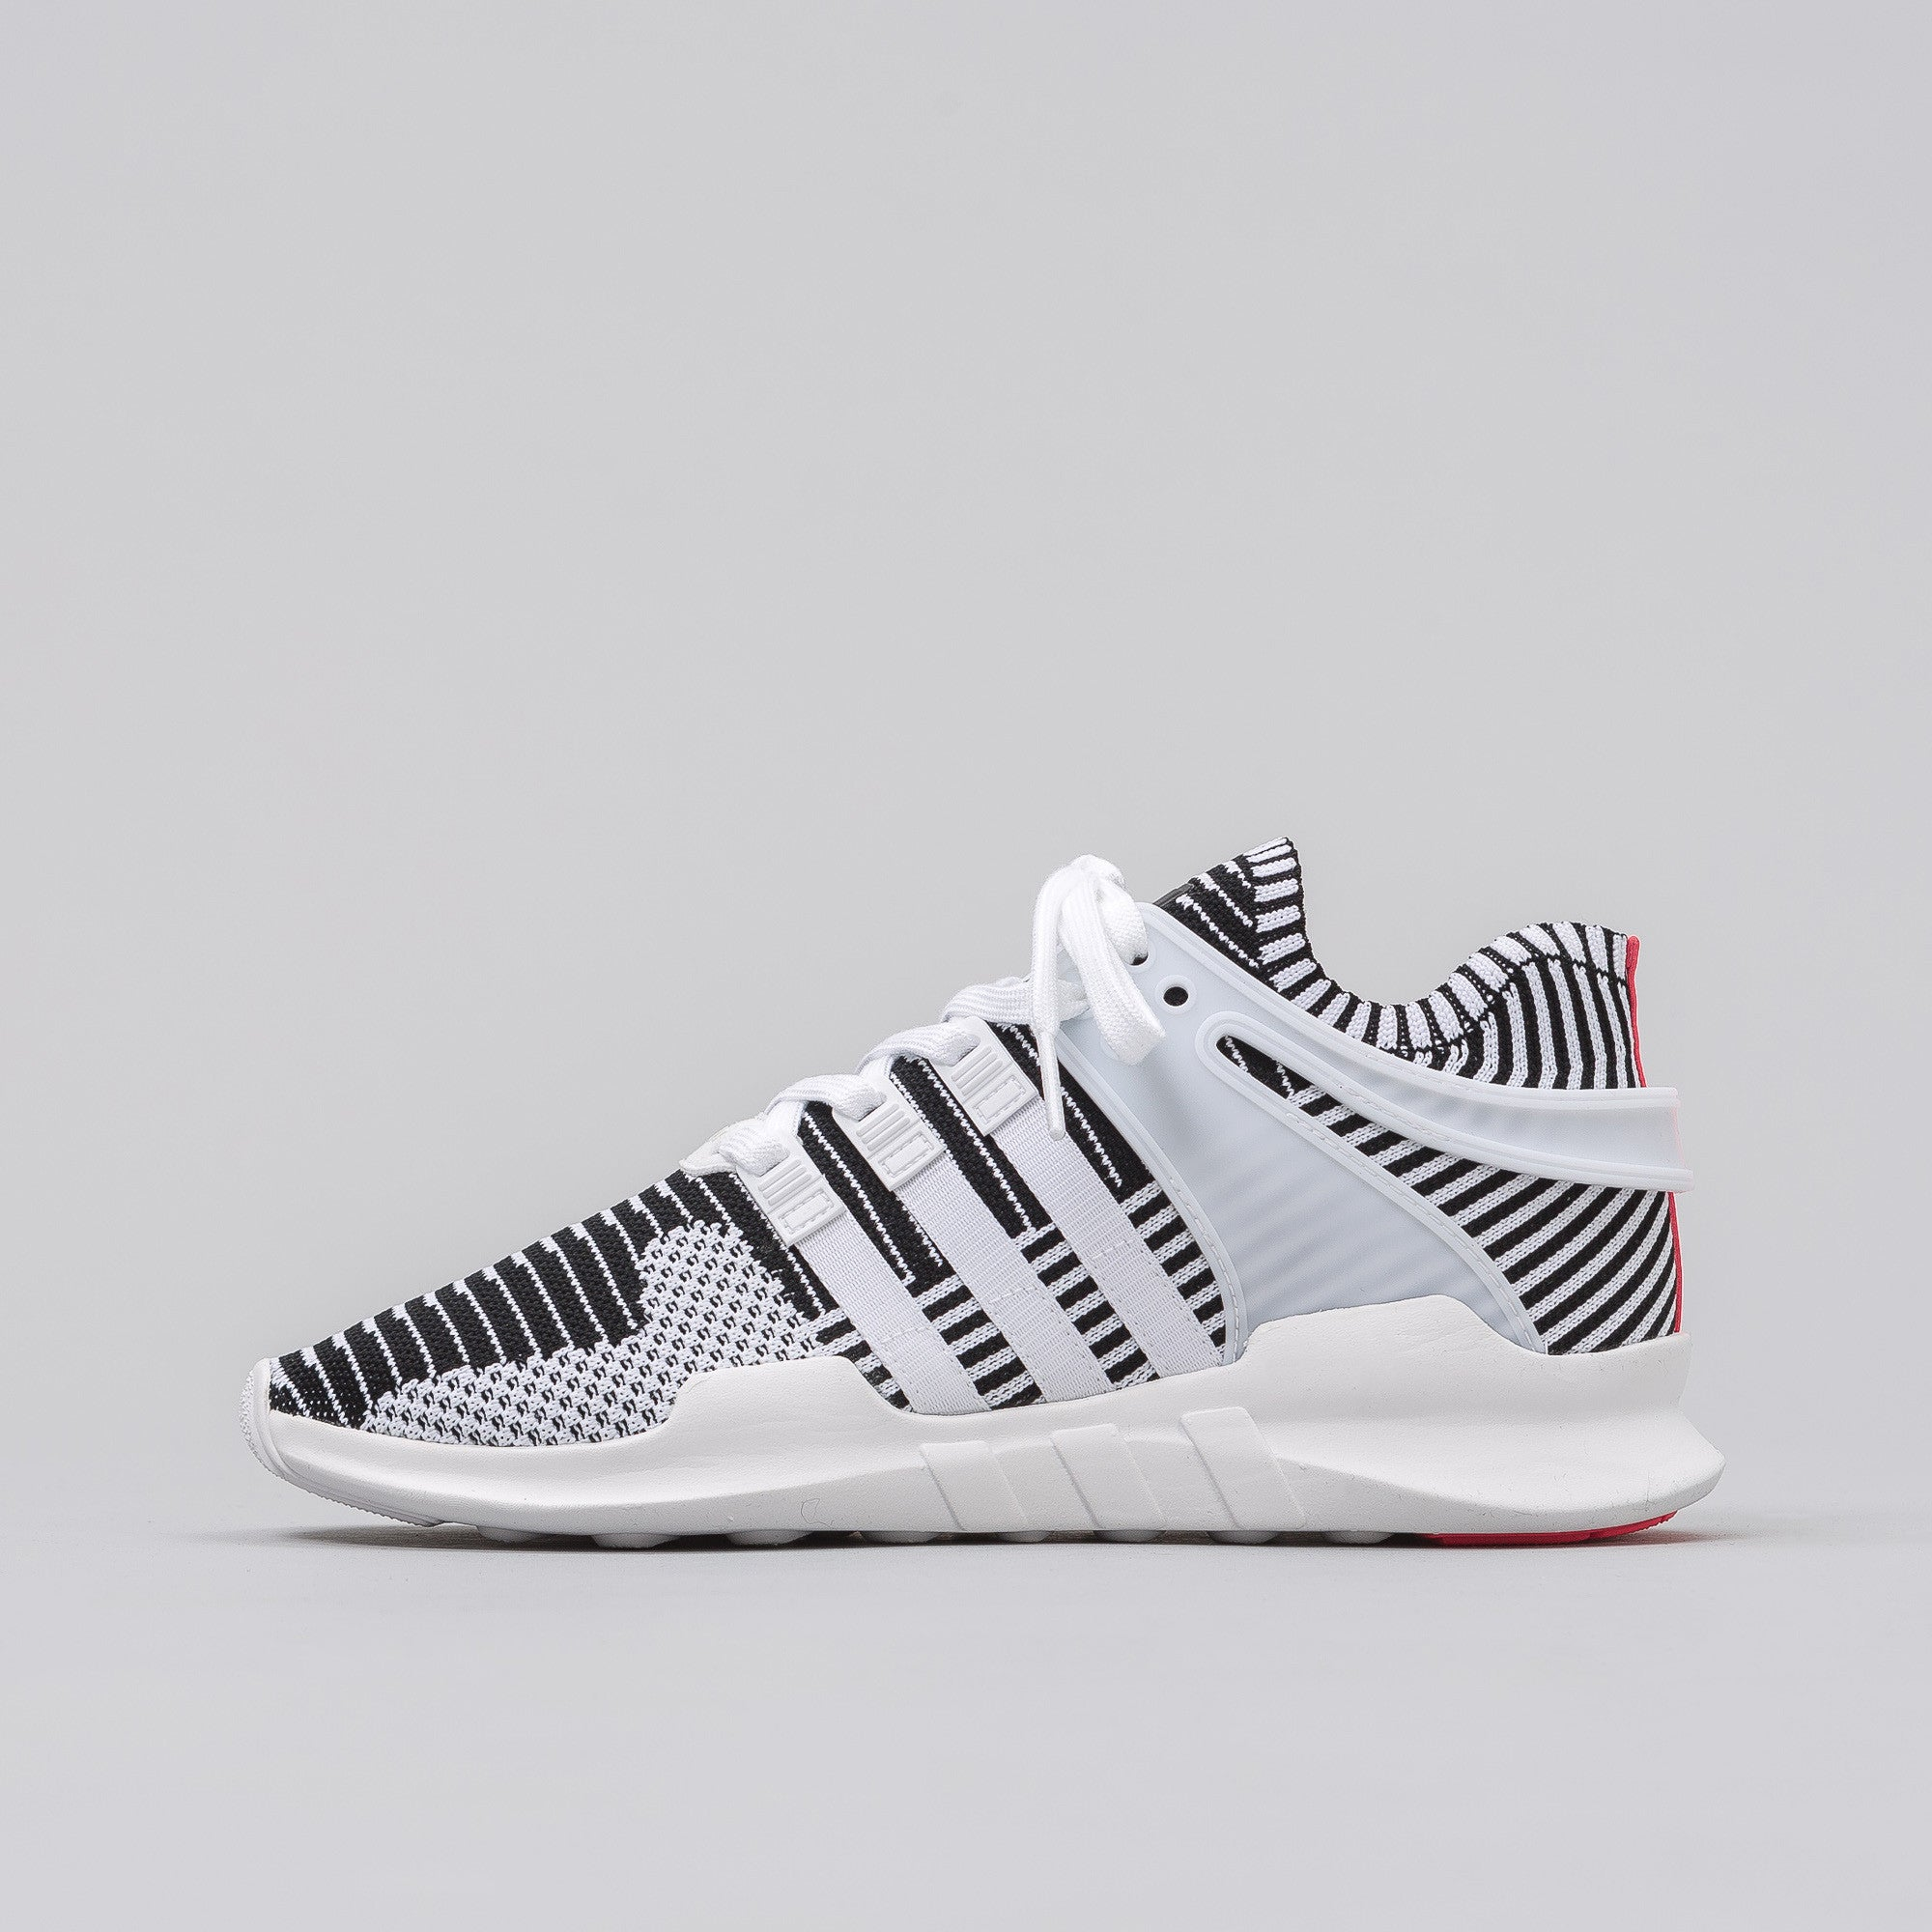 New Adidas EQT Support 93/17 First In Sneakers